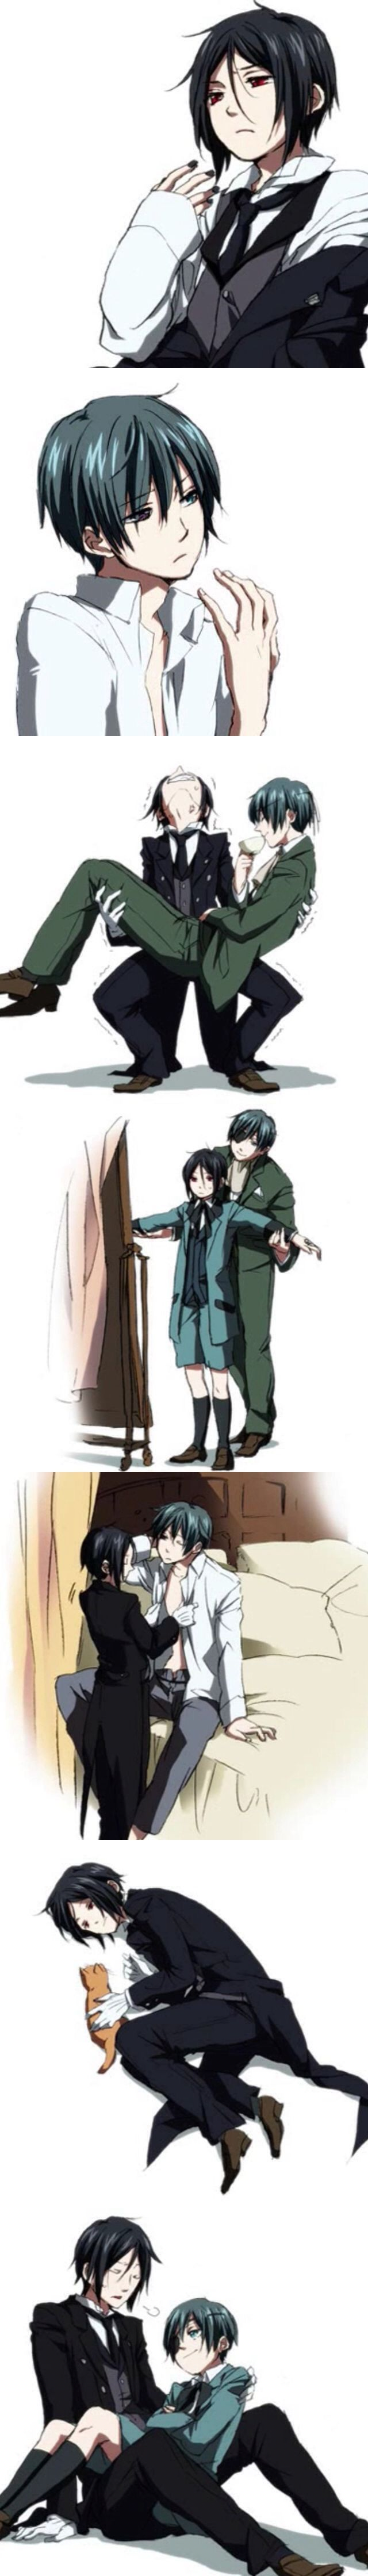 If Sebastian and Ciel swapped ages